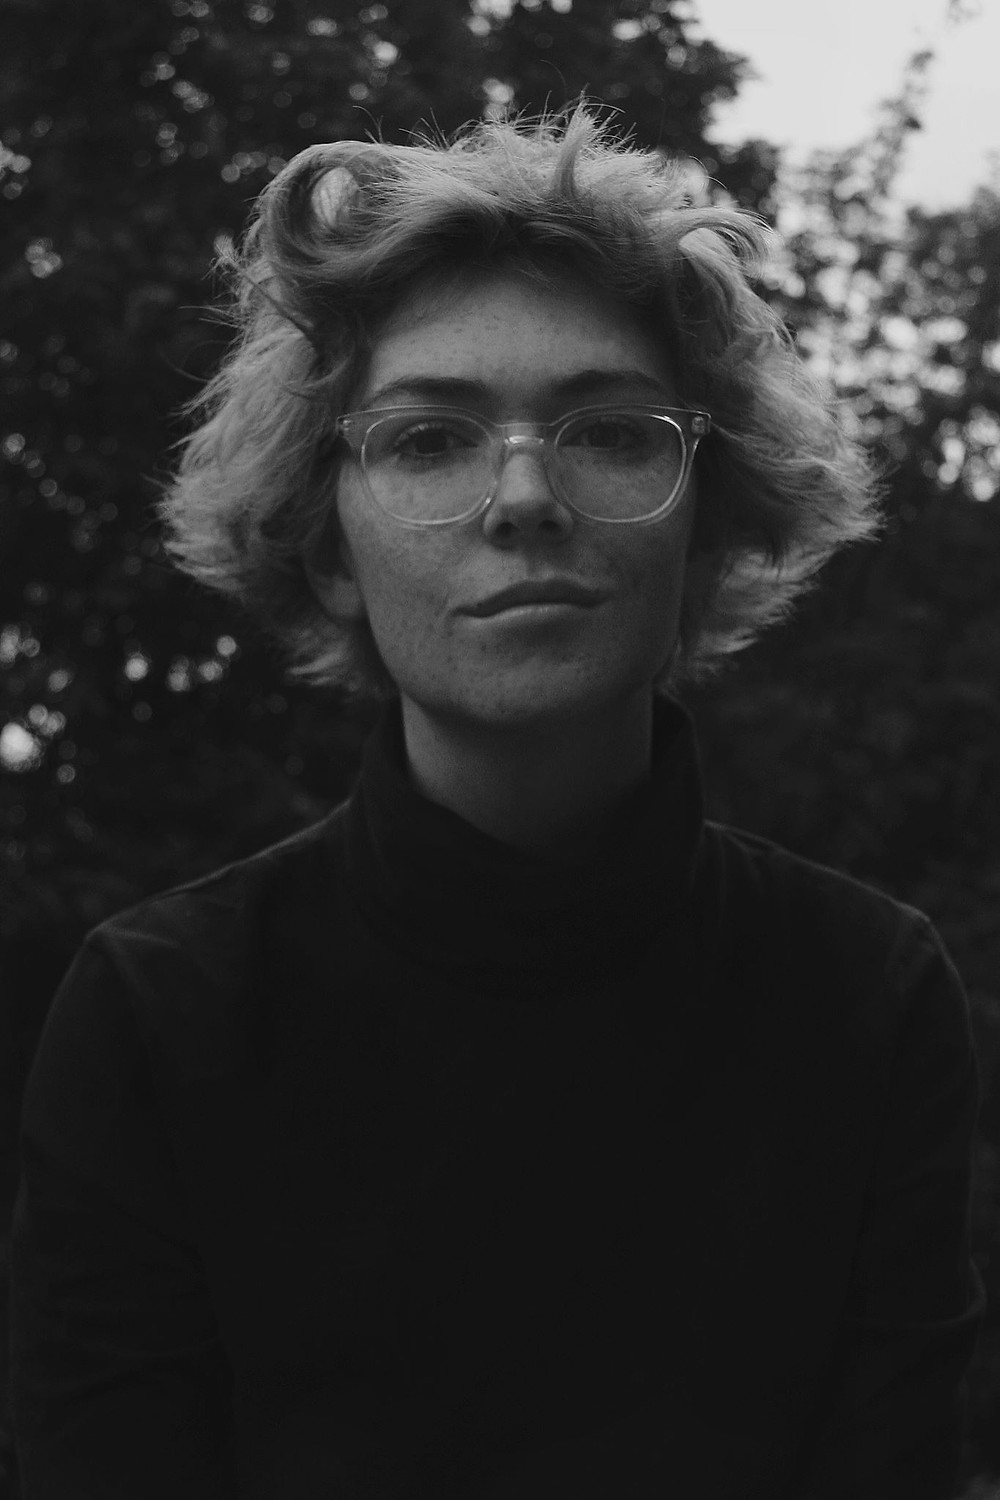 here's a pic of me looking like Barb from Stranger things